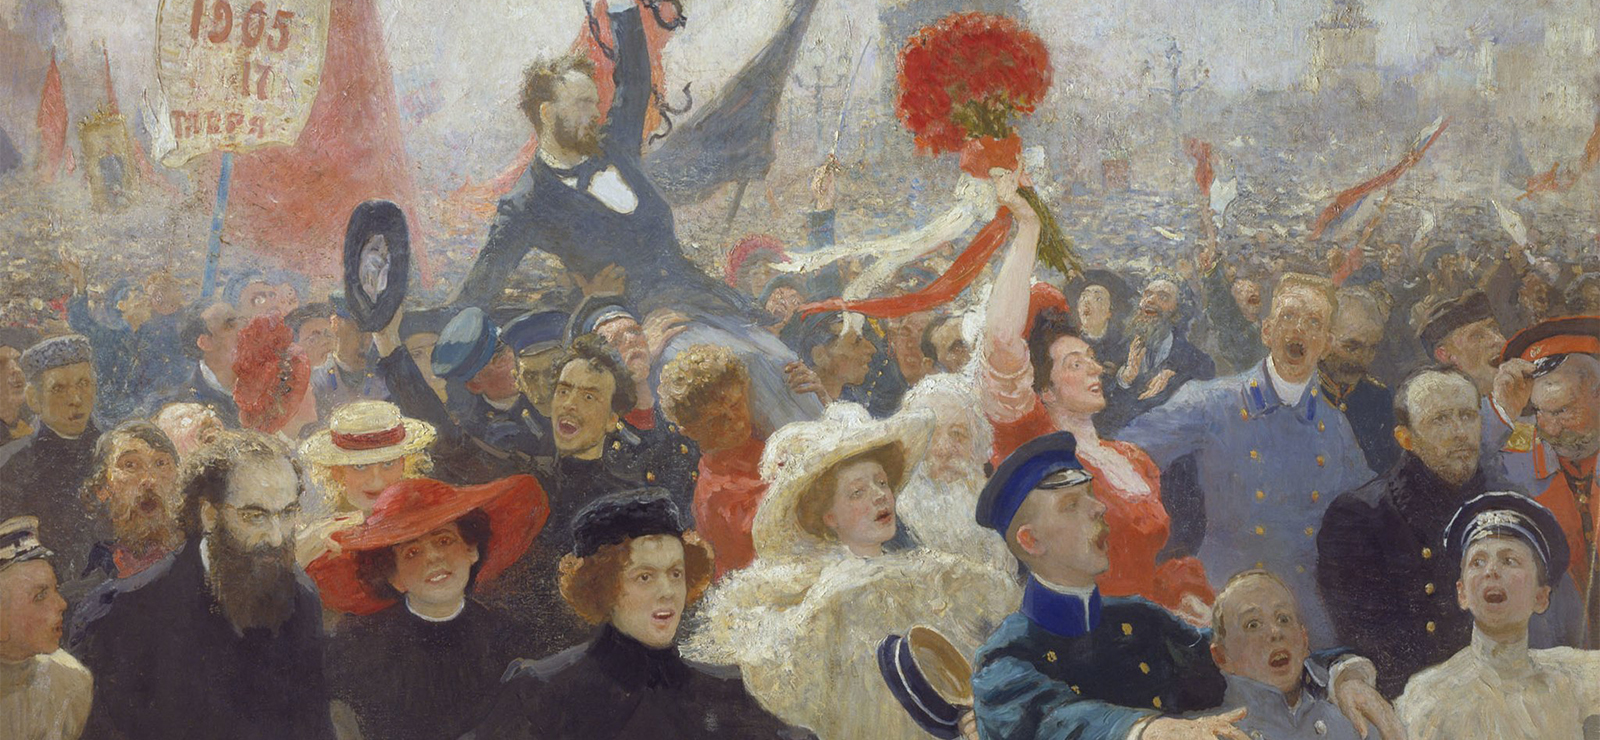 [Panel Two: From the Romanovs to the Revolution: Art and Politics in Russia] Demonstration on October 17, 1905 by Ilya Repin. Wikimedia Commons